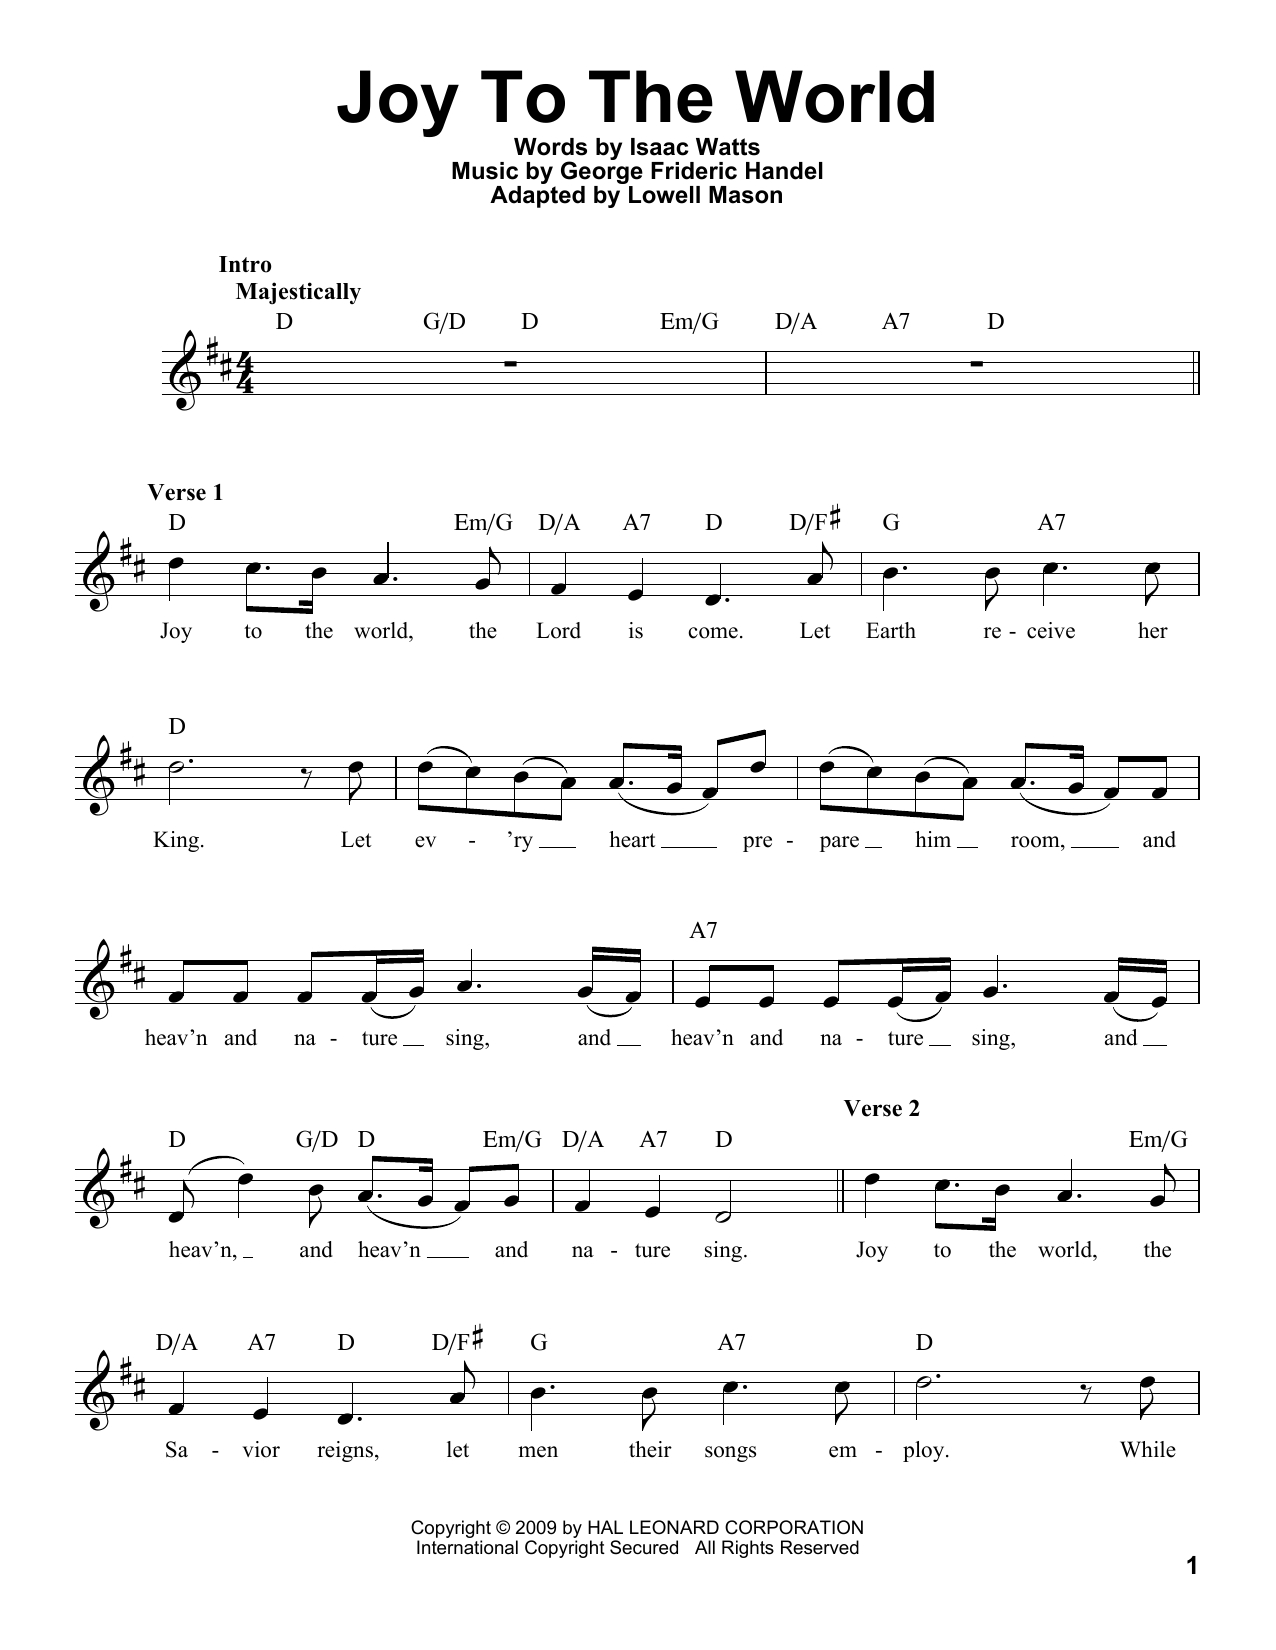 Joy To The World Chords Joy To The World George Frideric Handel Guitar Ensemble Digital Sheet Music